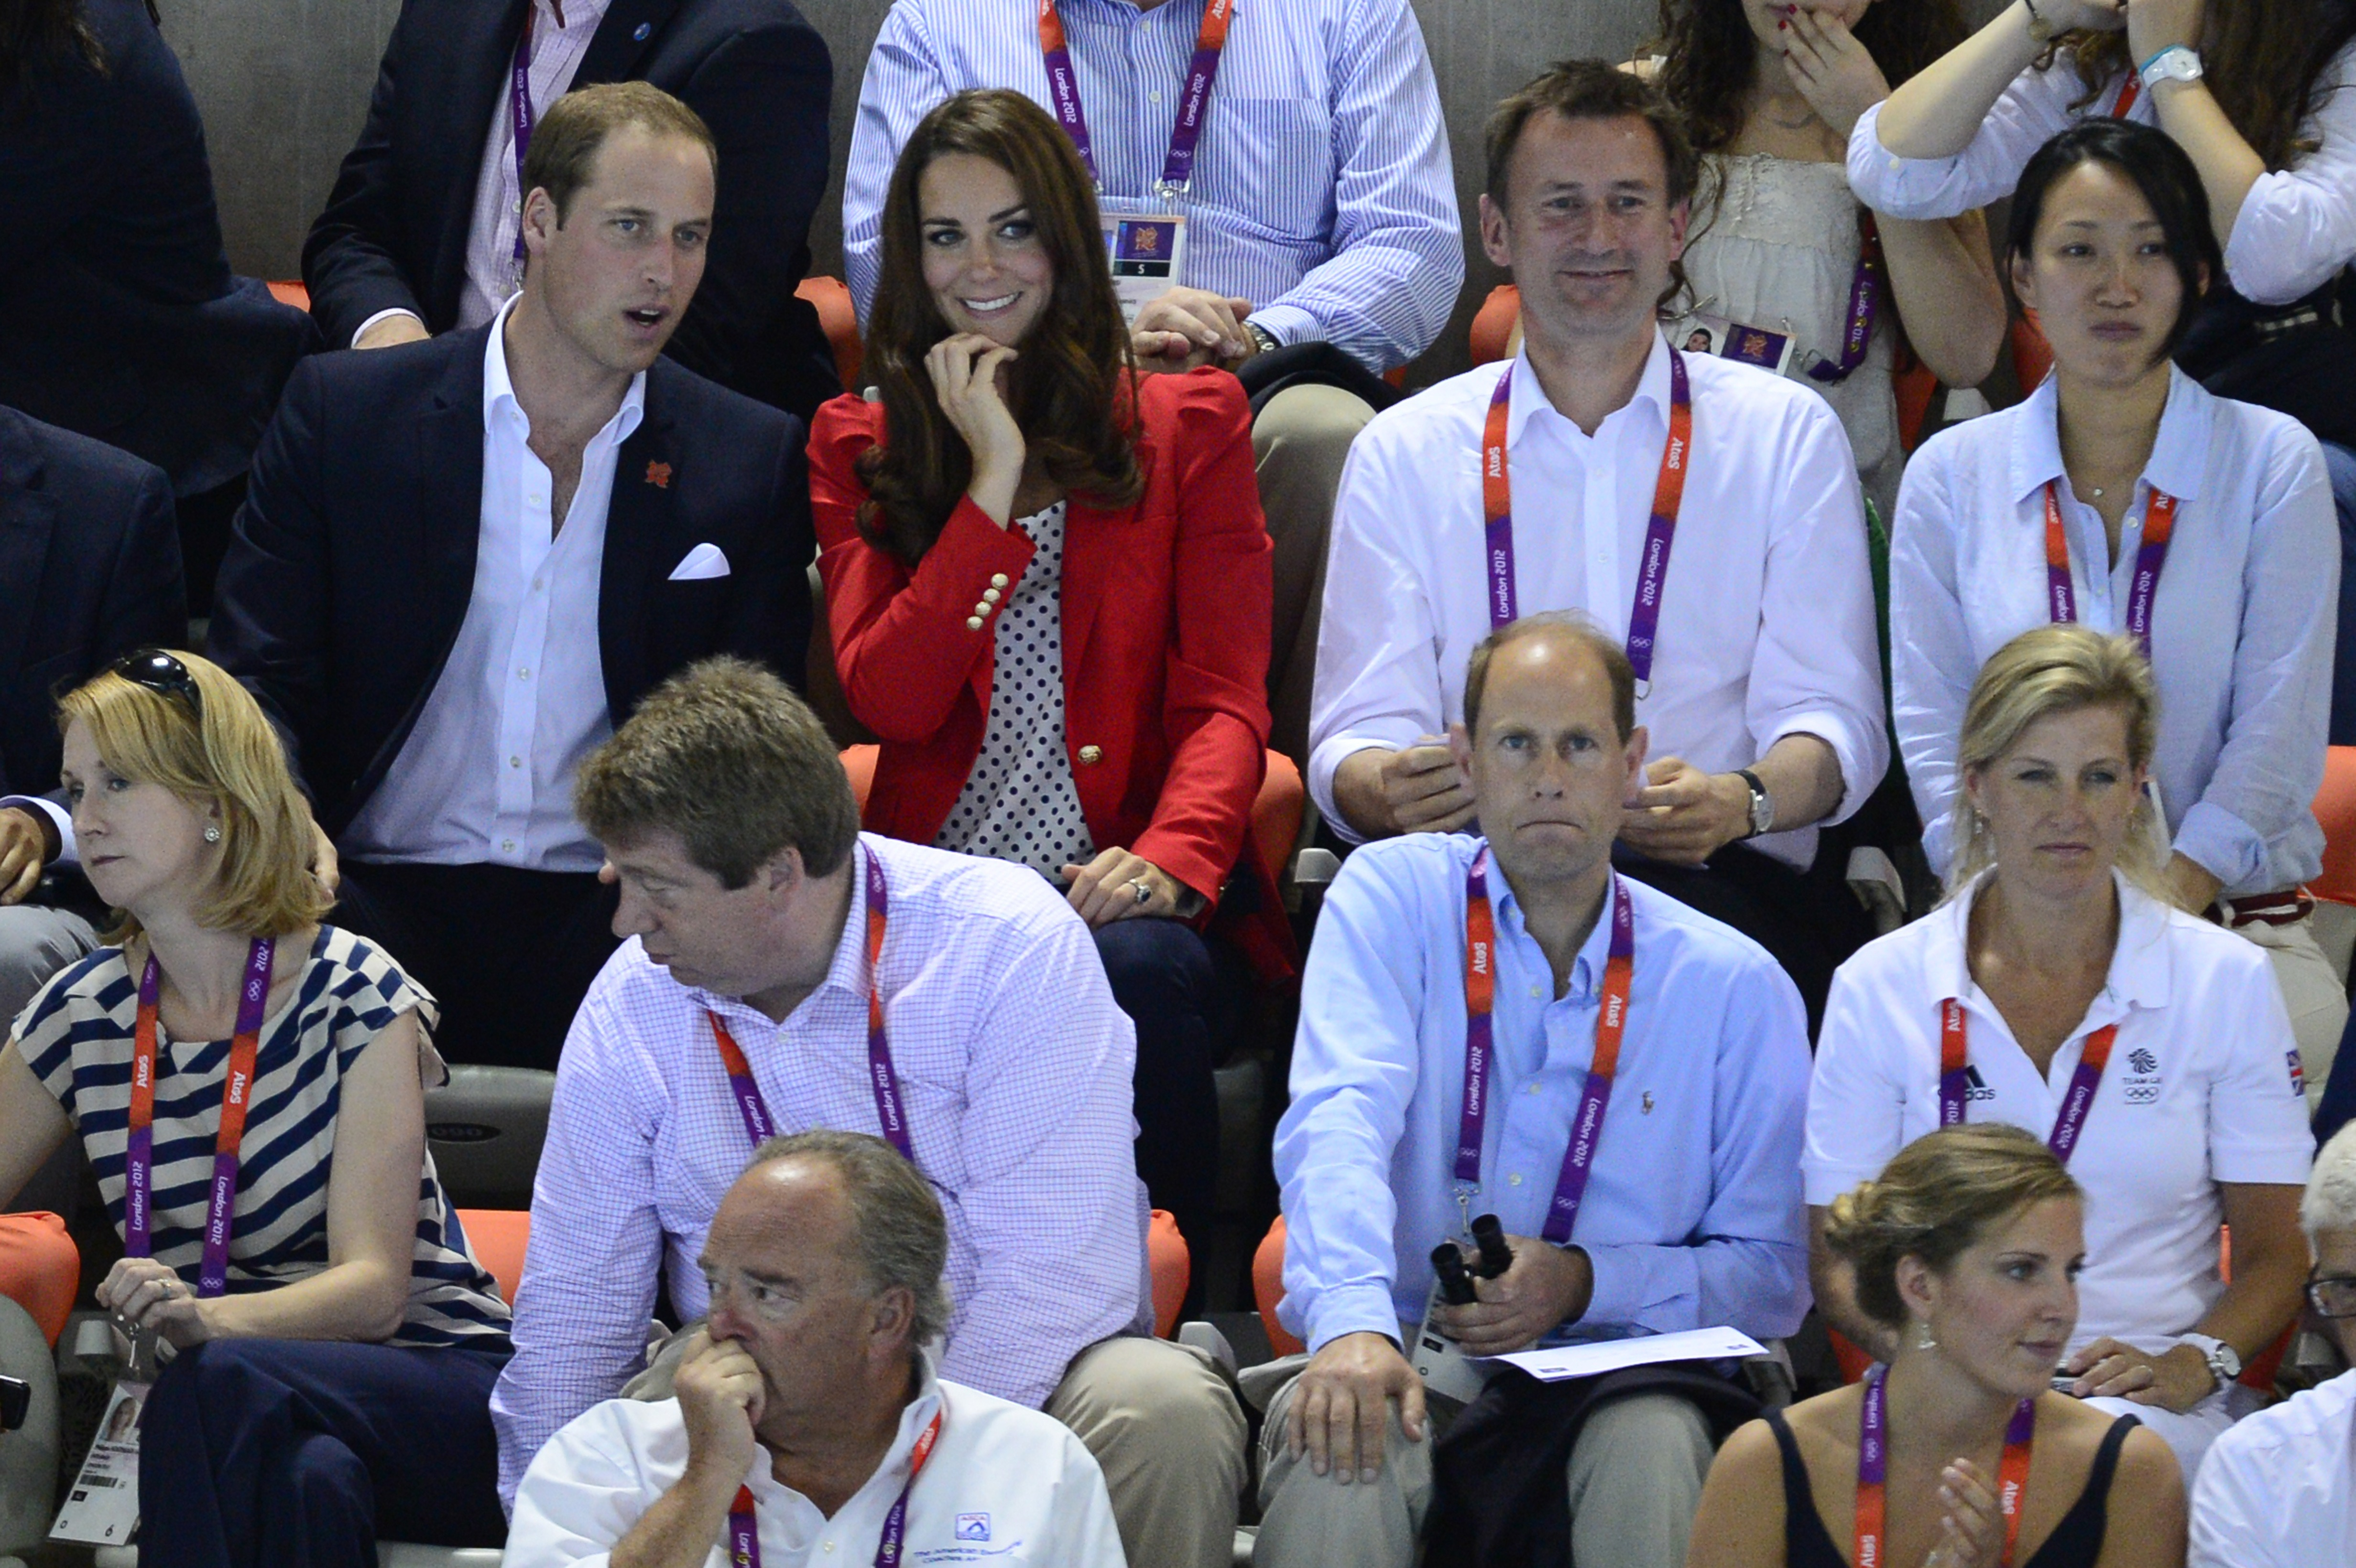 Lucia and Jeremy Hunt Watching the Olympics with Prince WIlliam and Kate Middleton